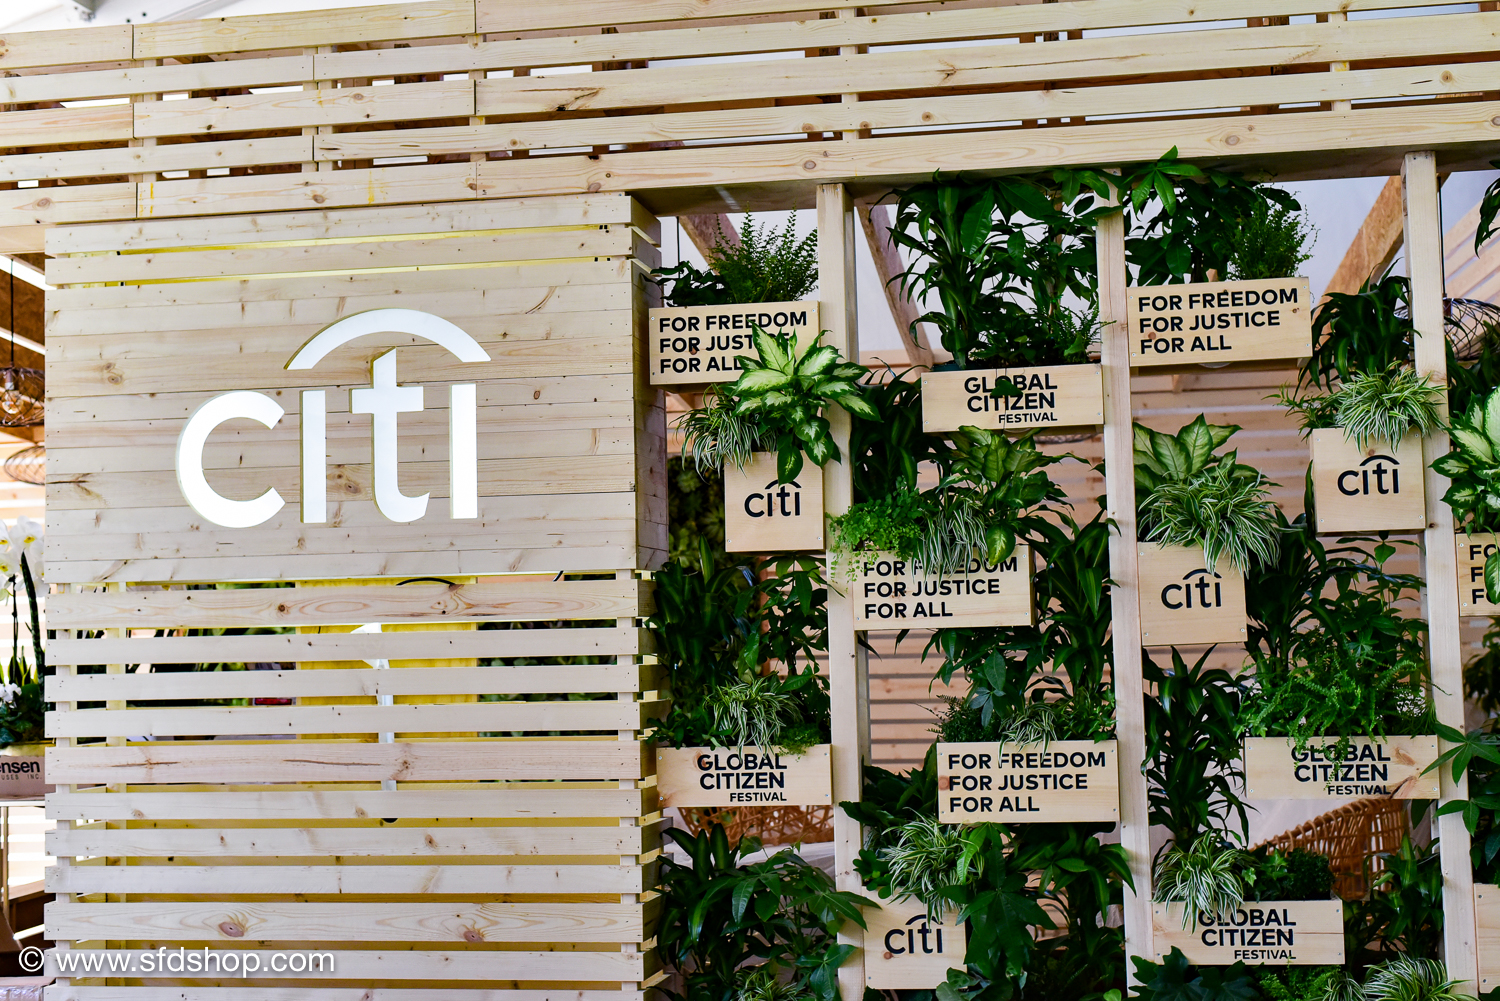 Citi+Global+Citizen+Festival+fabricated+by+SFDS-13 (1).jpg